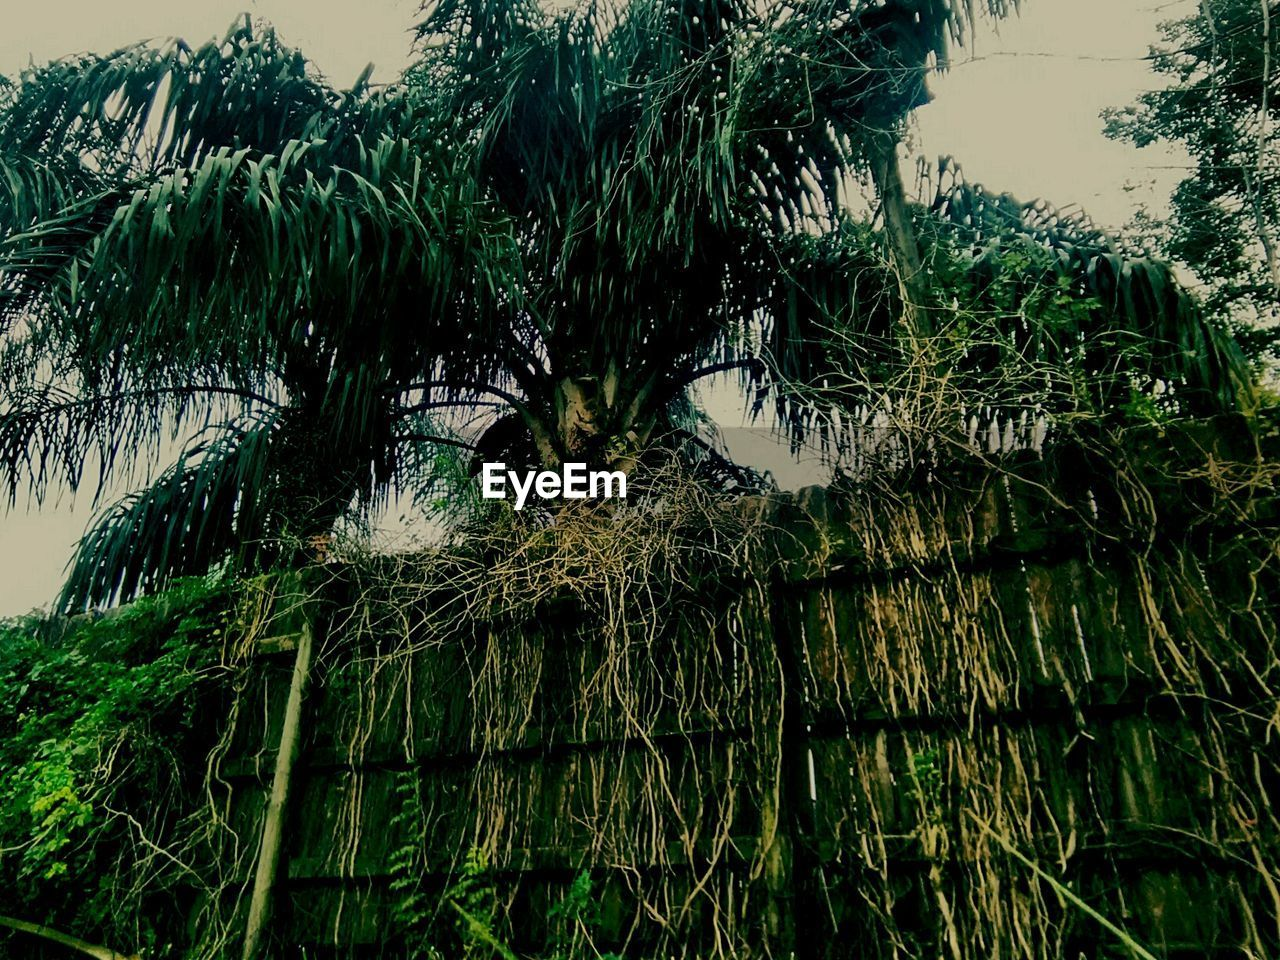 growth, tree, nature, outdoors, no people, day, water, green color, plant, tranquility, grass, palm tree, beauty in nature, scenics, sky, close-up